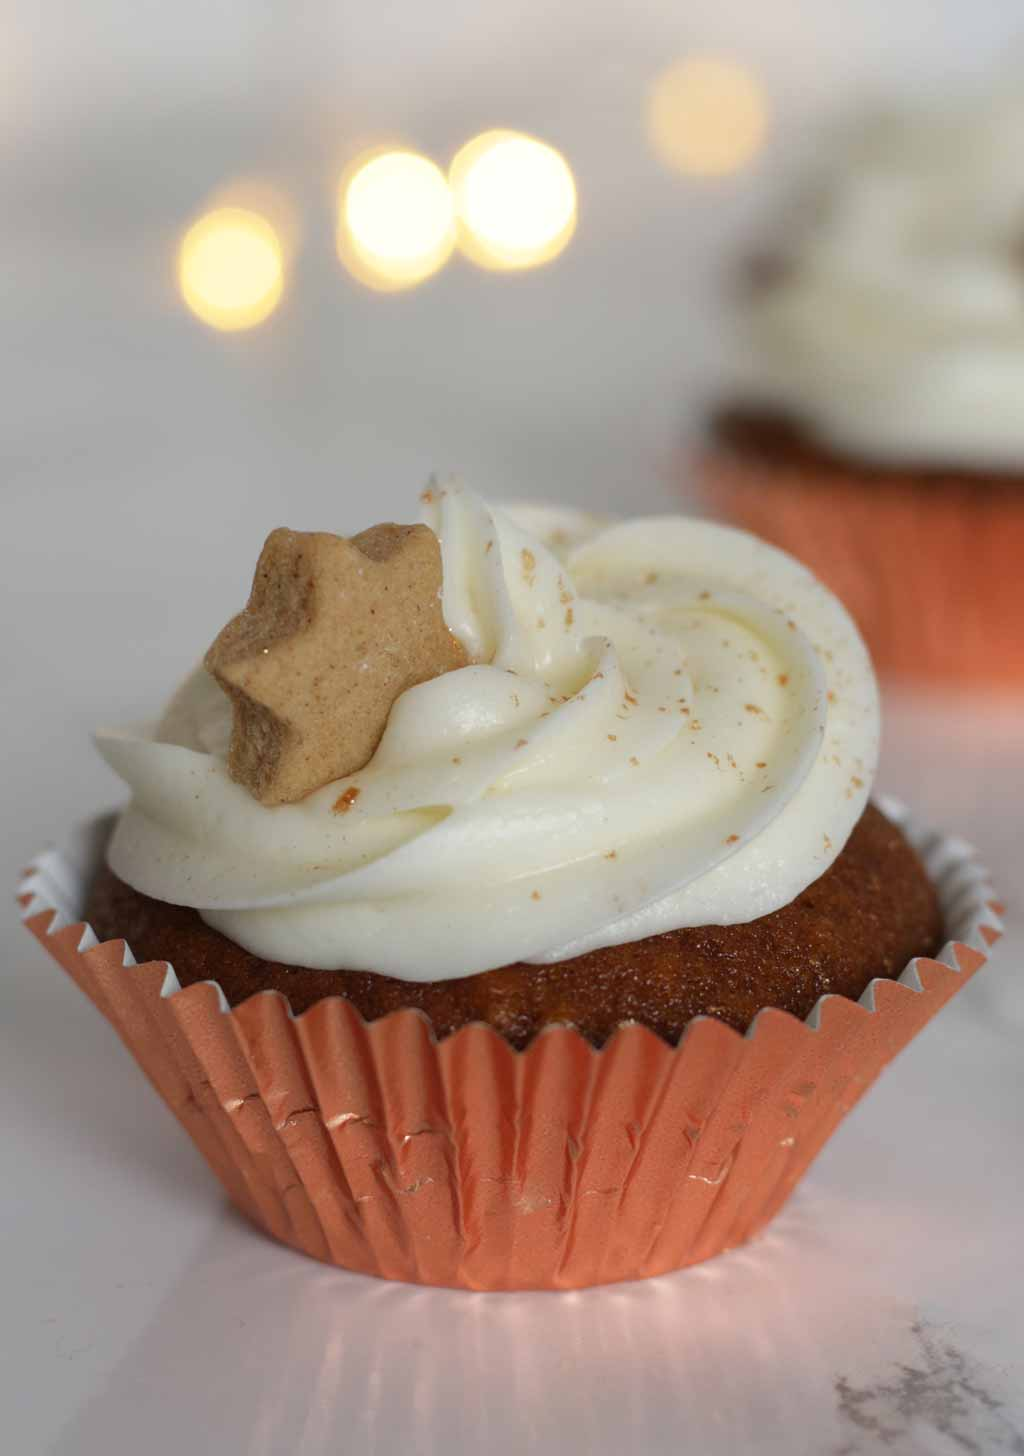 Gingerbread Cupcake In A Rose Gold Foil Case With Cream Cheese Icing And A Small Gingerbread Star On Top